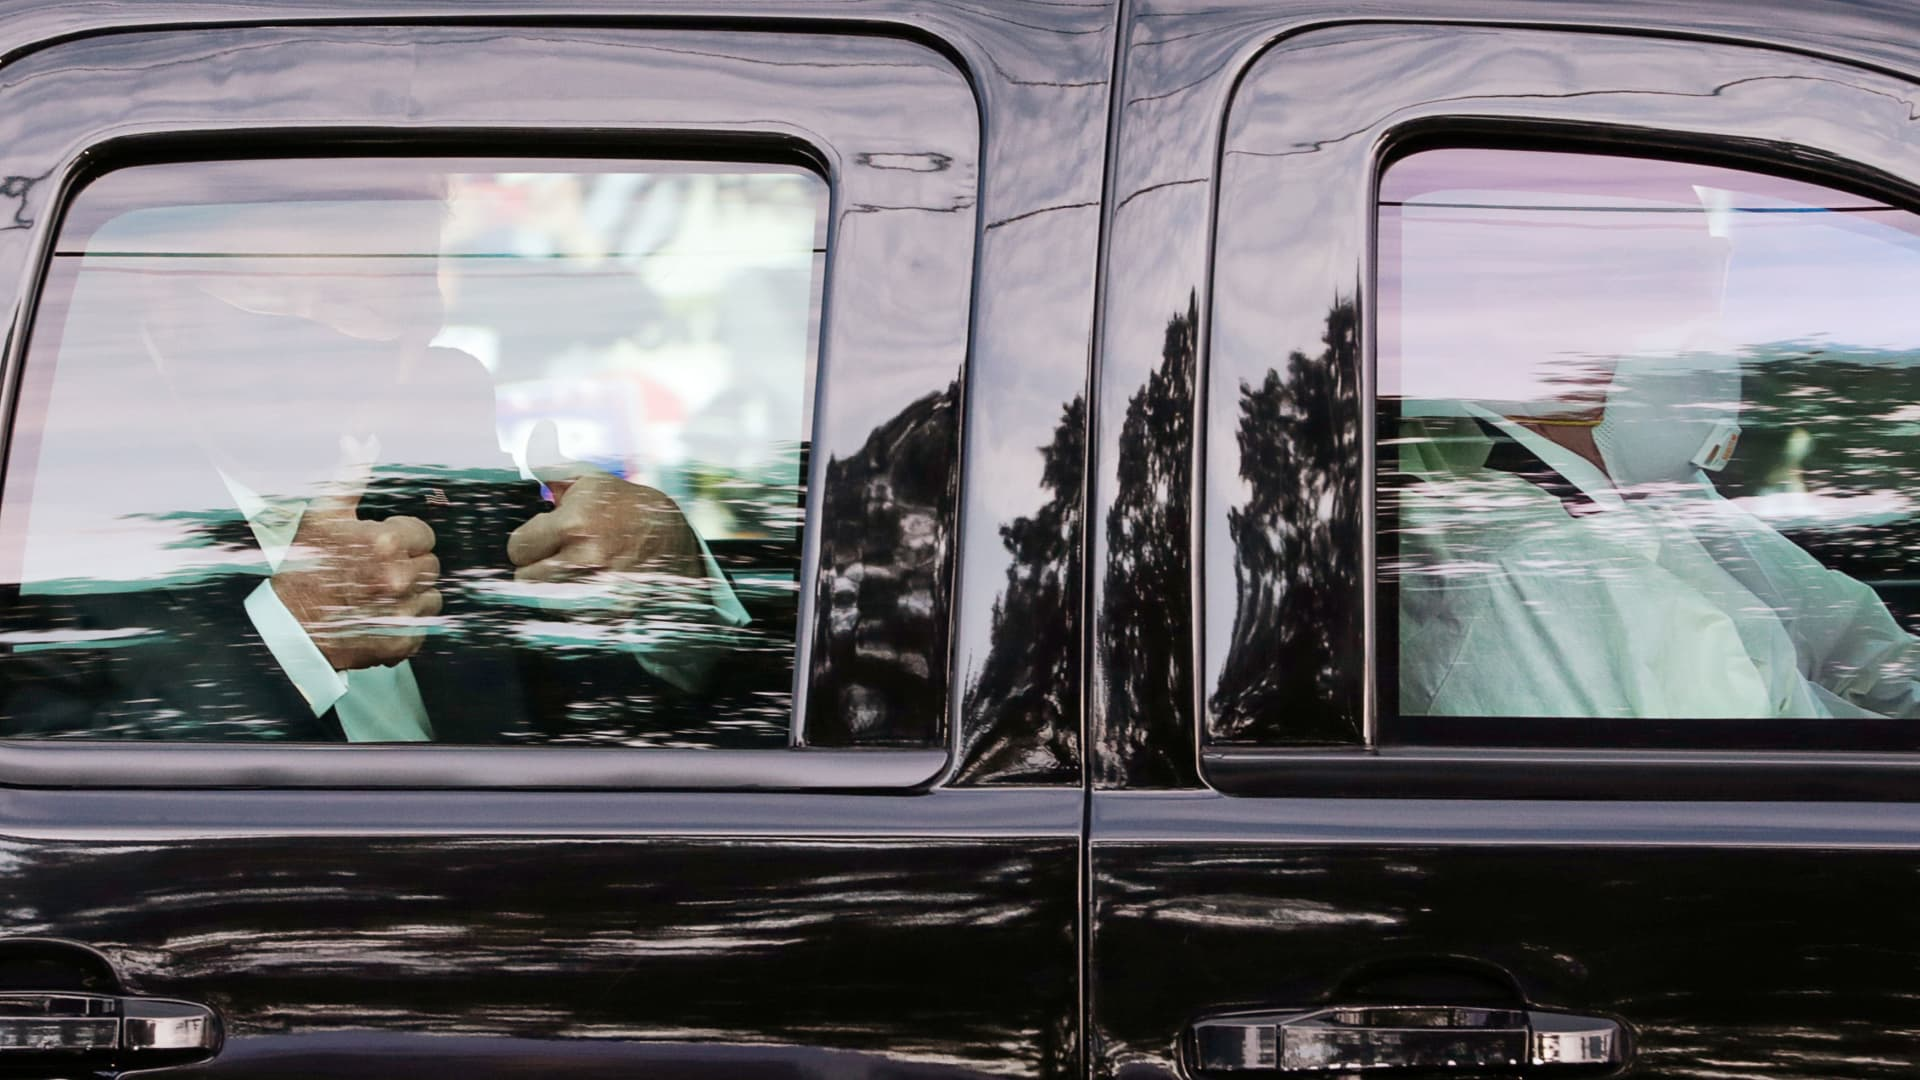 U.S. President Donald Trump gives two thumbs up to supporters as he rides in the presidential SUV with two U.S. Secret Service agents wearing medical protective masks, goggles and protective gowns in the front seat as they drive past the front of Walter Reed National Military Medical Center, where he is being treated for coronavirus disease (COVID-19) in Bethesda, Maryland, U.S. October 4, 2020.